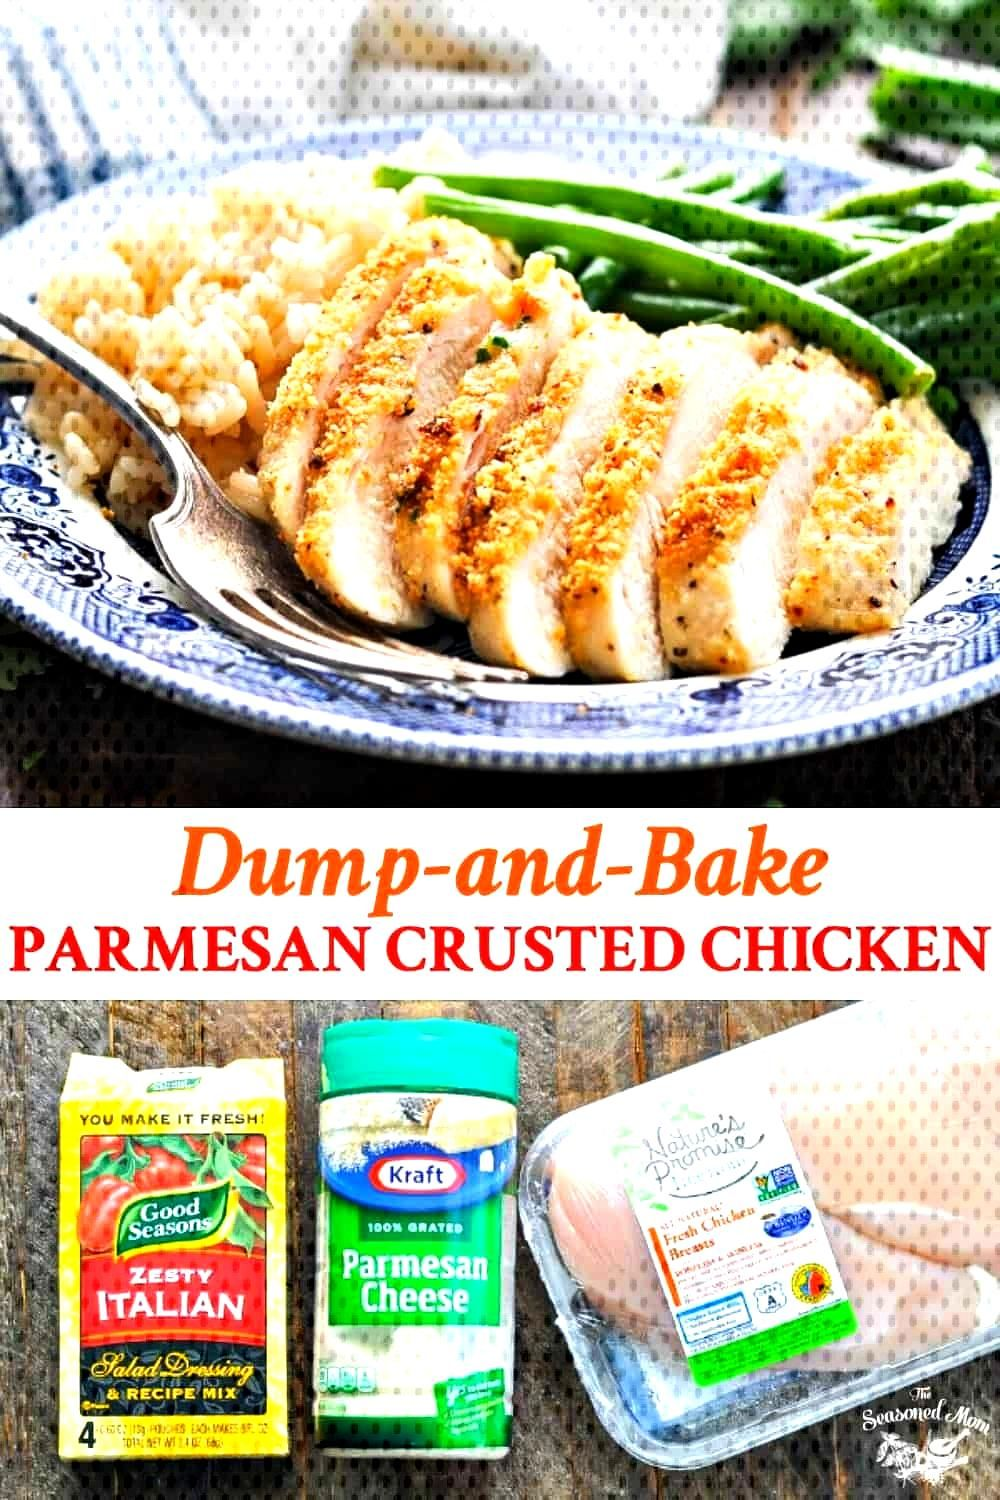 Parmesan Crusted Chicken {3 Ingredients!} This dump-and-bake Parmesan Crusted Chicken requires just